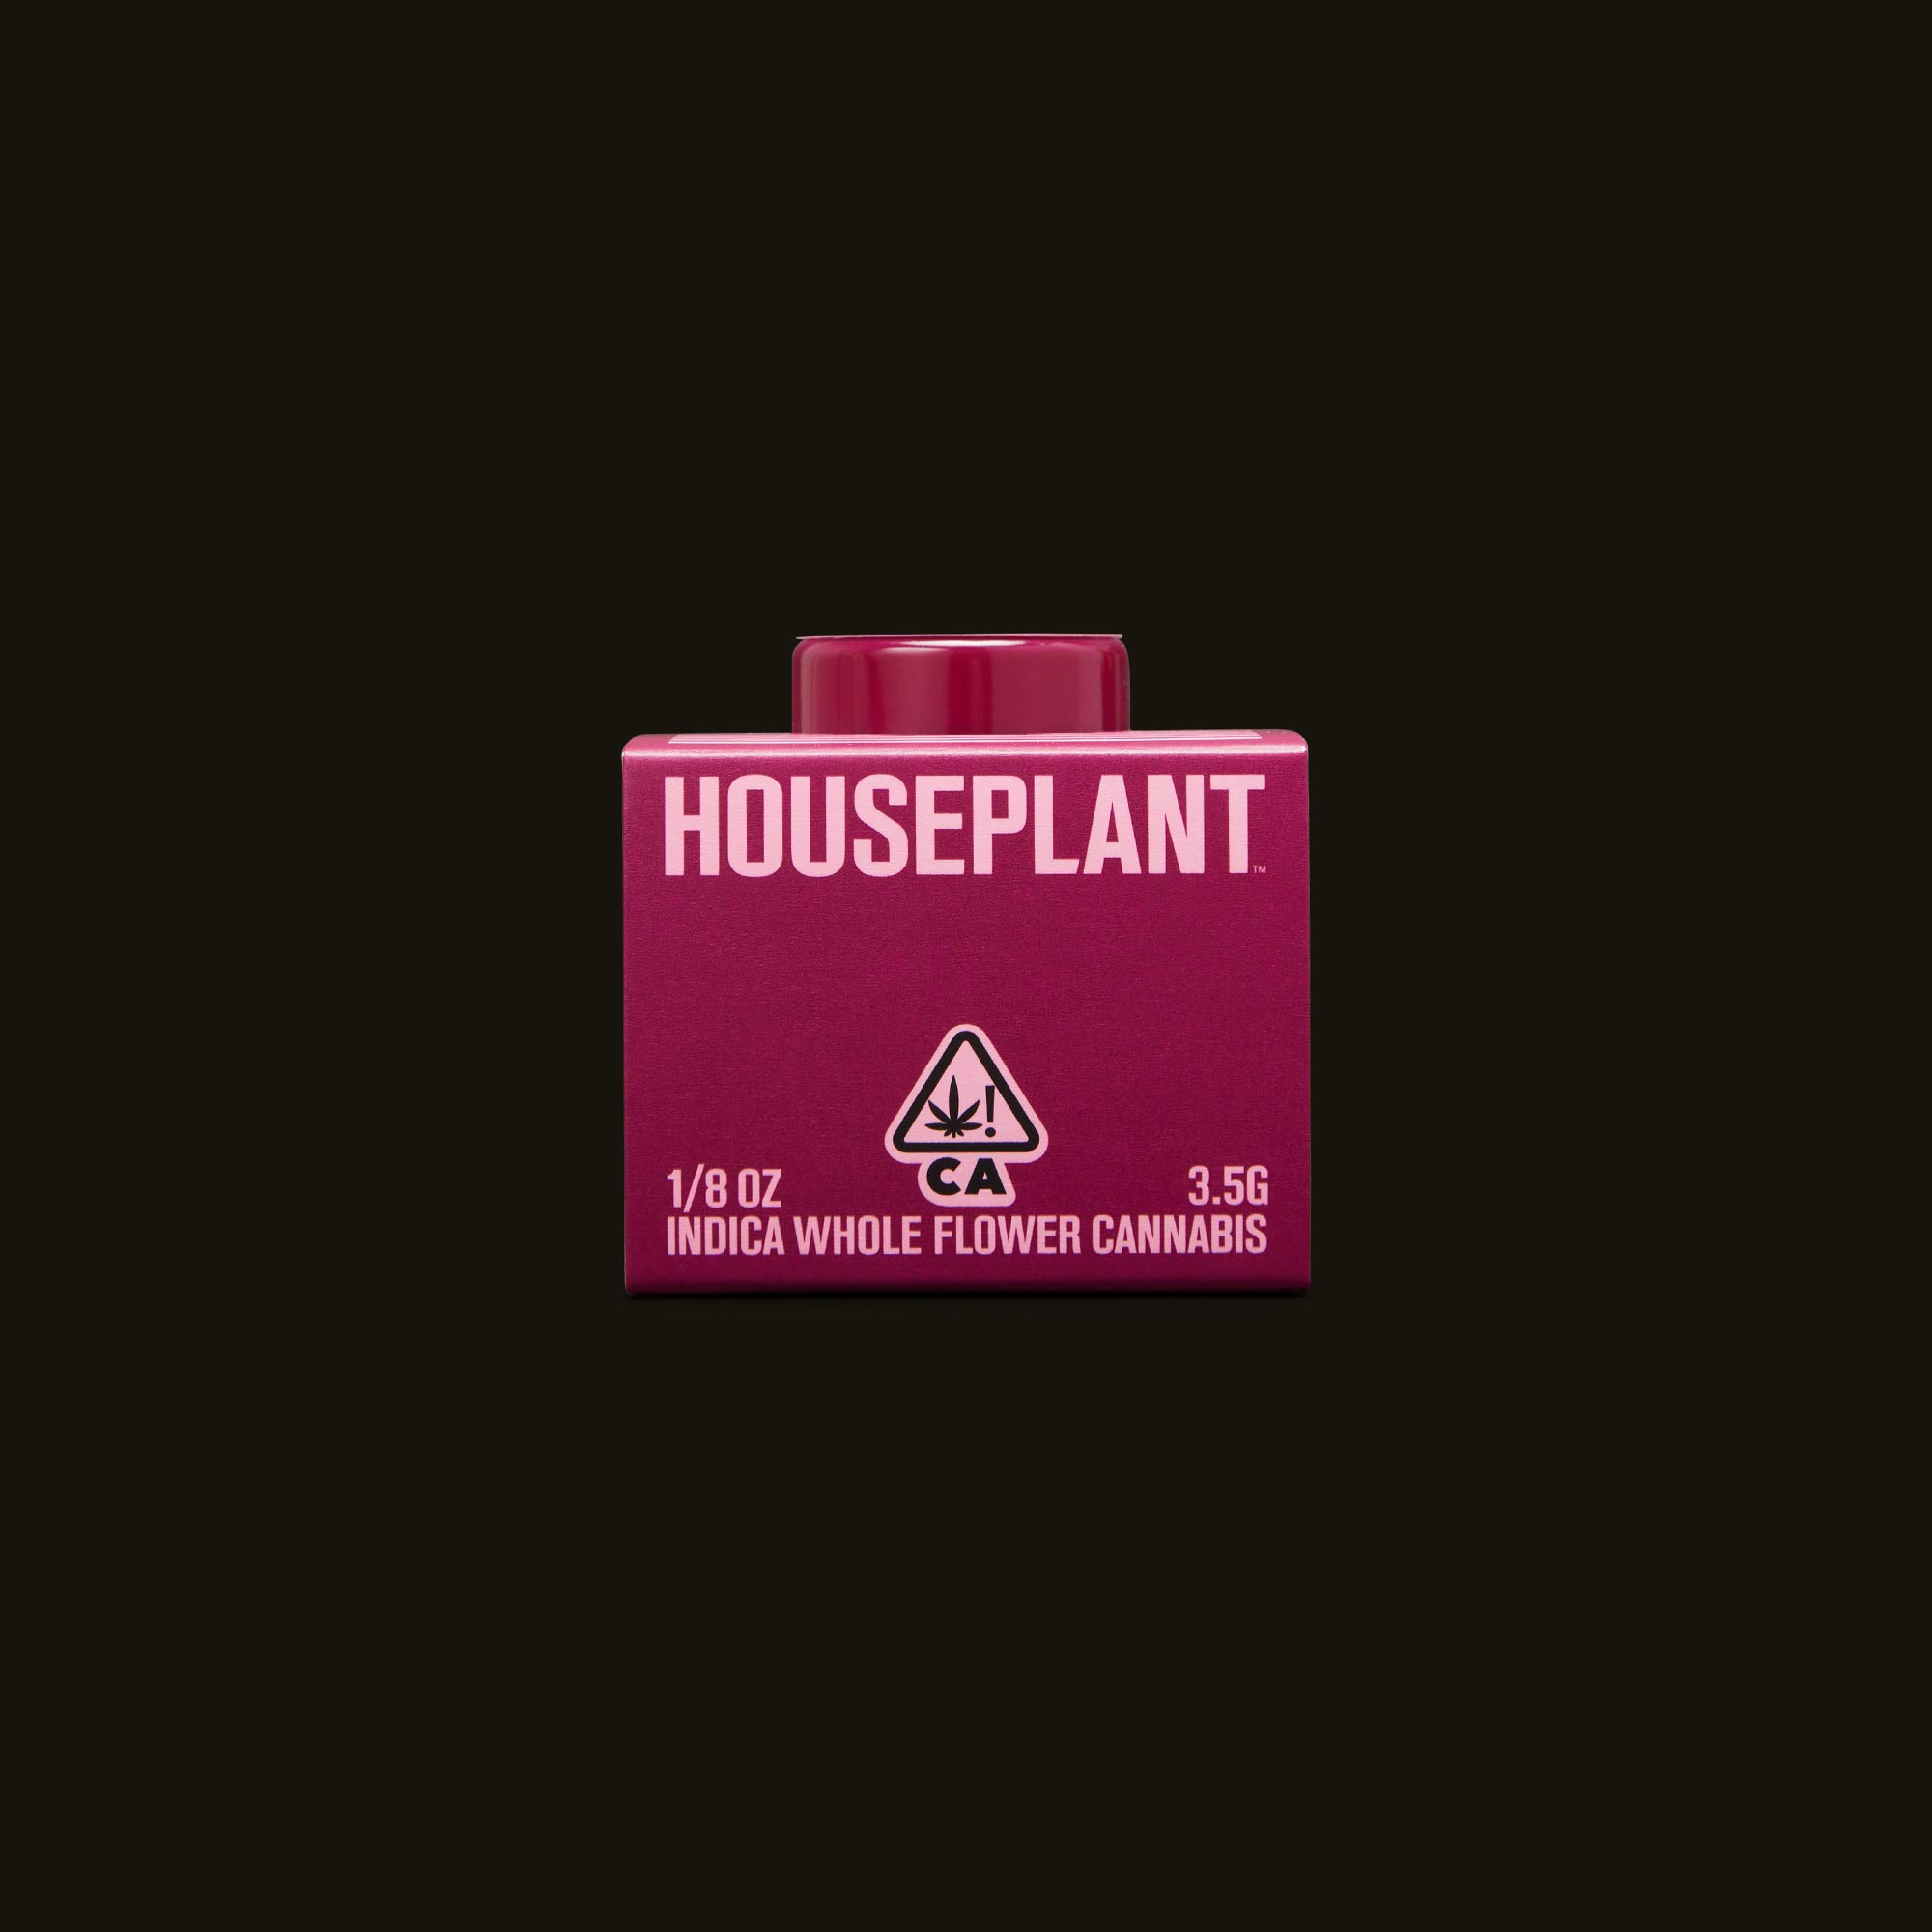 Houseplant Pink Moon Front Packaging